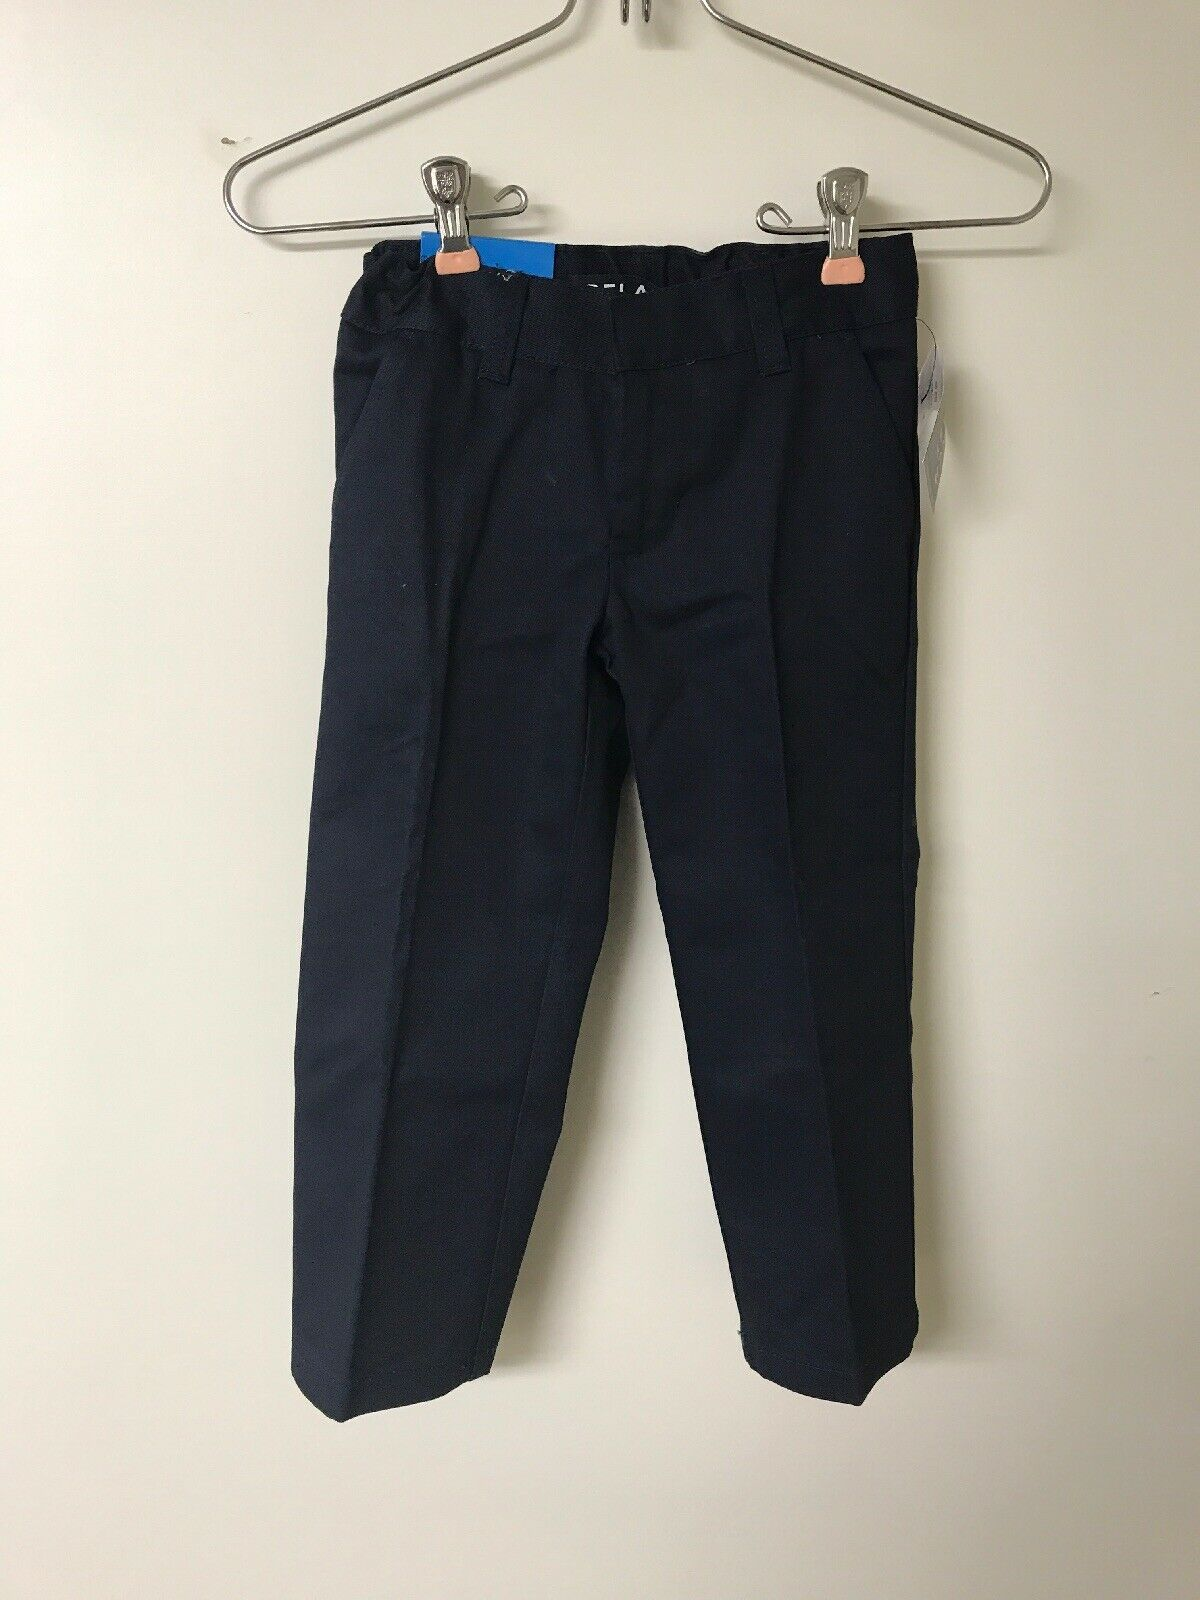 Primary image for French Toast Little Boys' Flat Front Double Knee Pant Adjustable Waist, Navy, 4